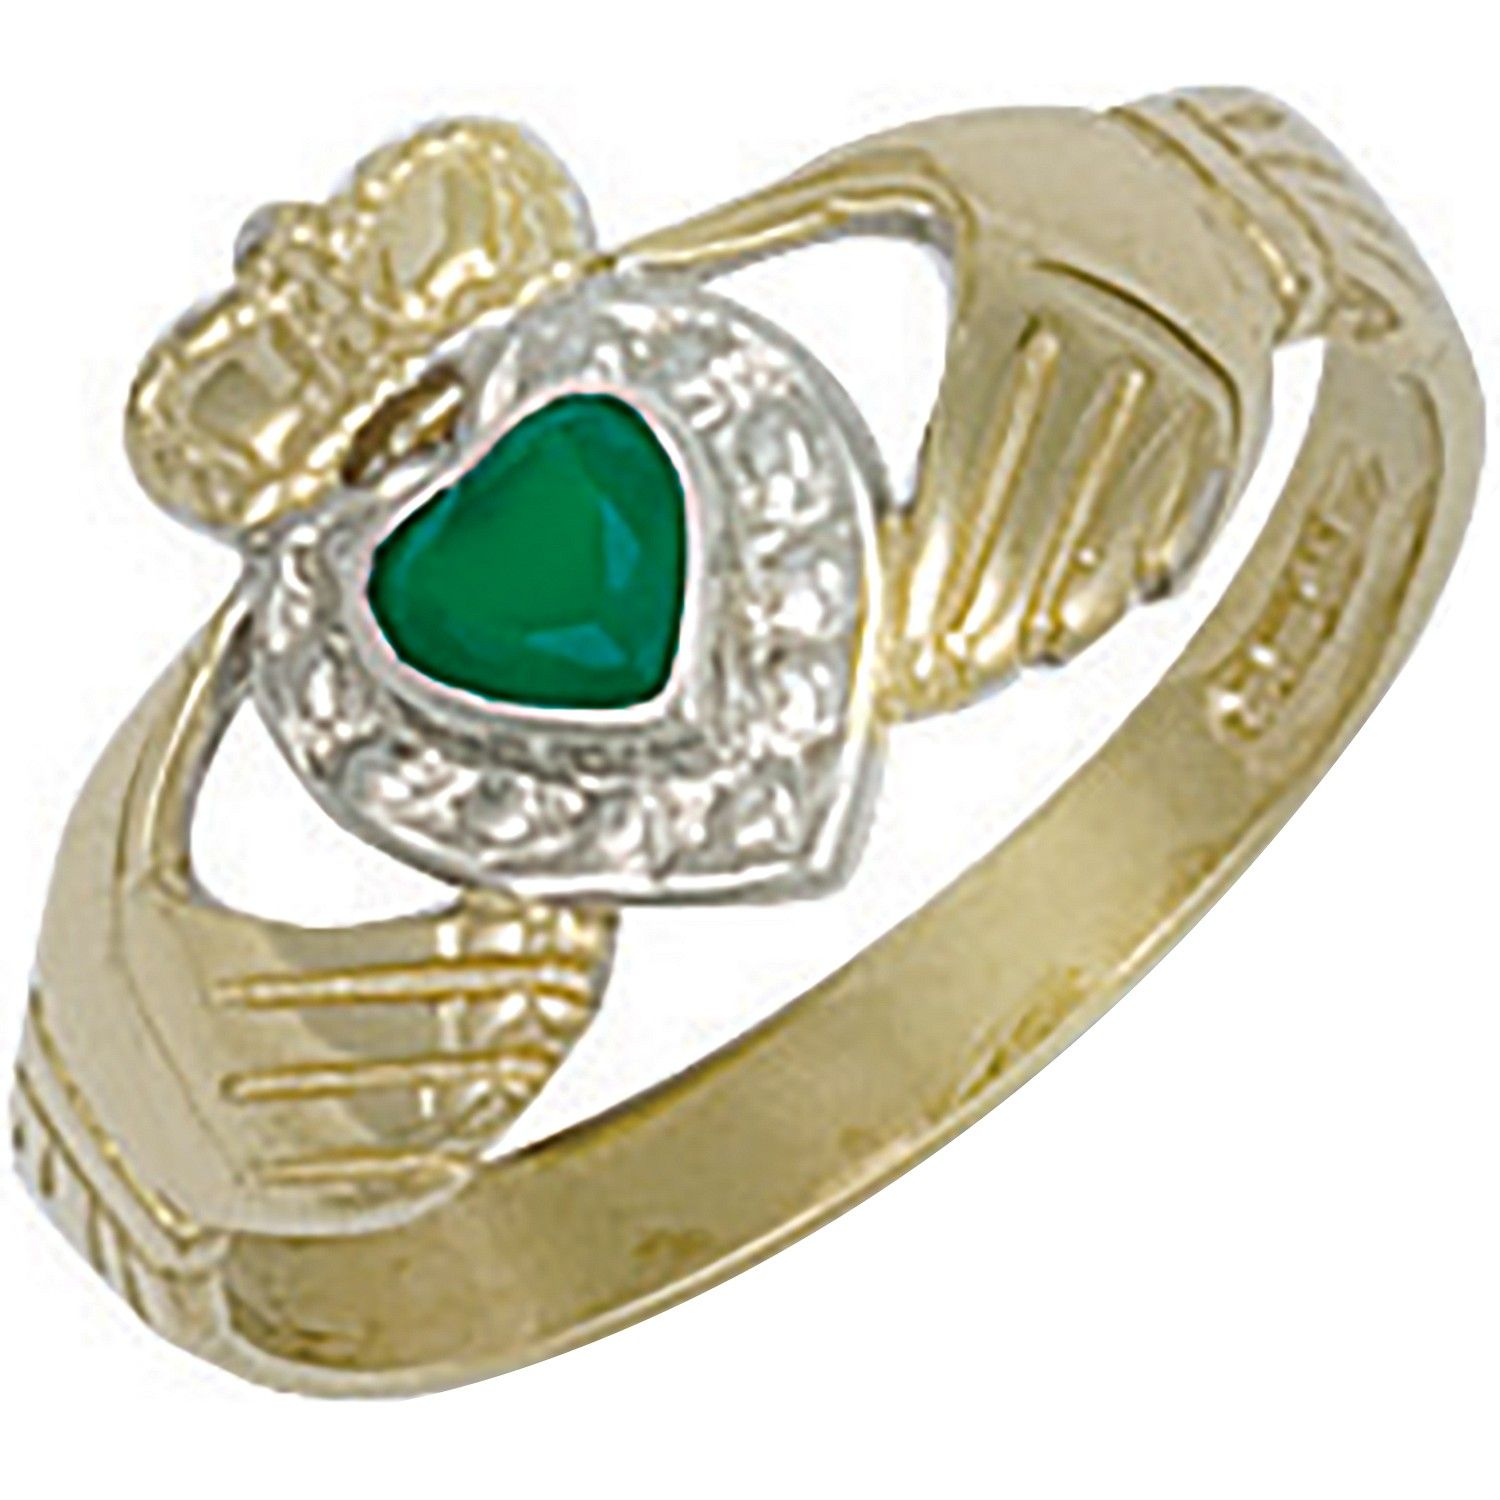 9ct Yellow Gold Cz & Agate Claddagh Ring